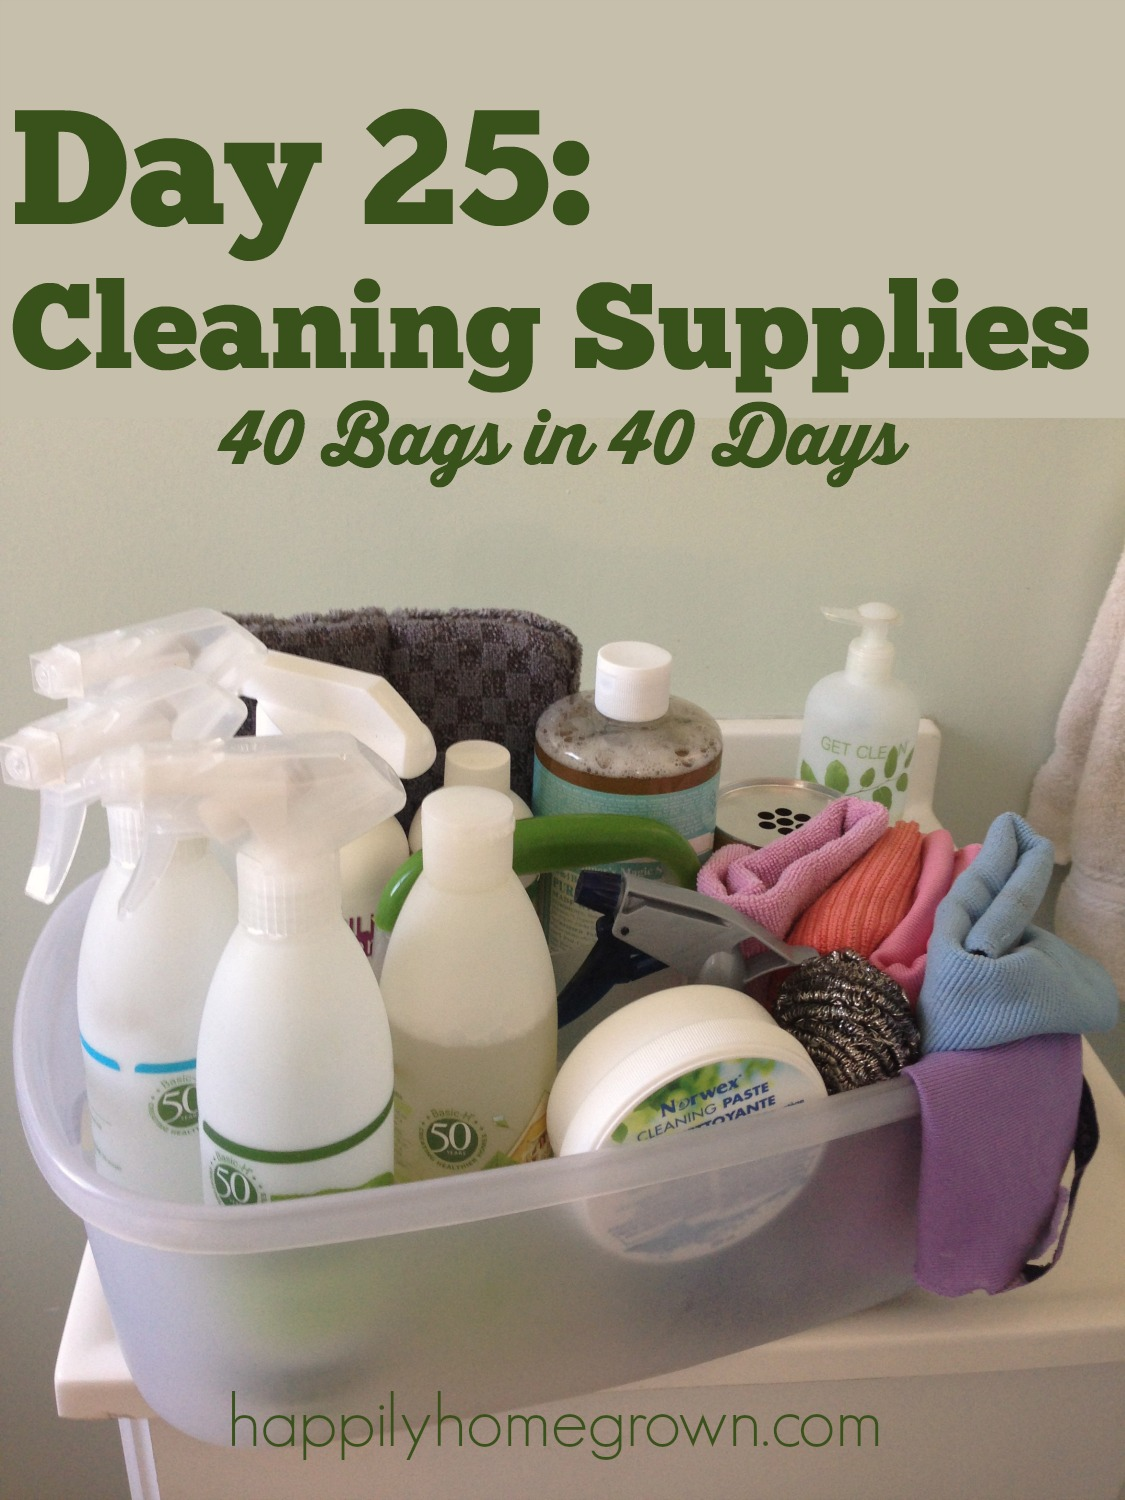 Decluttering your cleaning supplies? Keep what works for your family & what you like, and get rid of everything else. Here is what works for us.